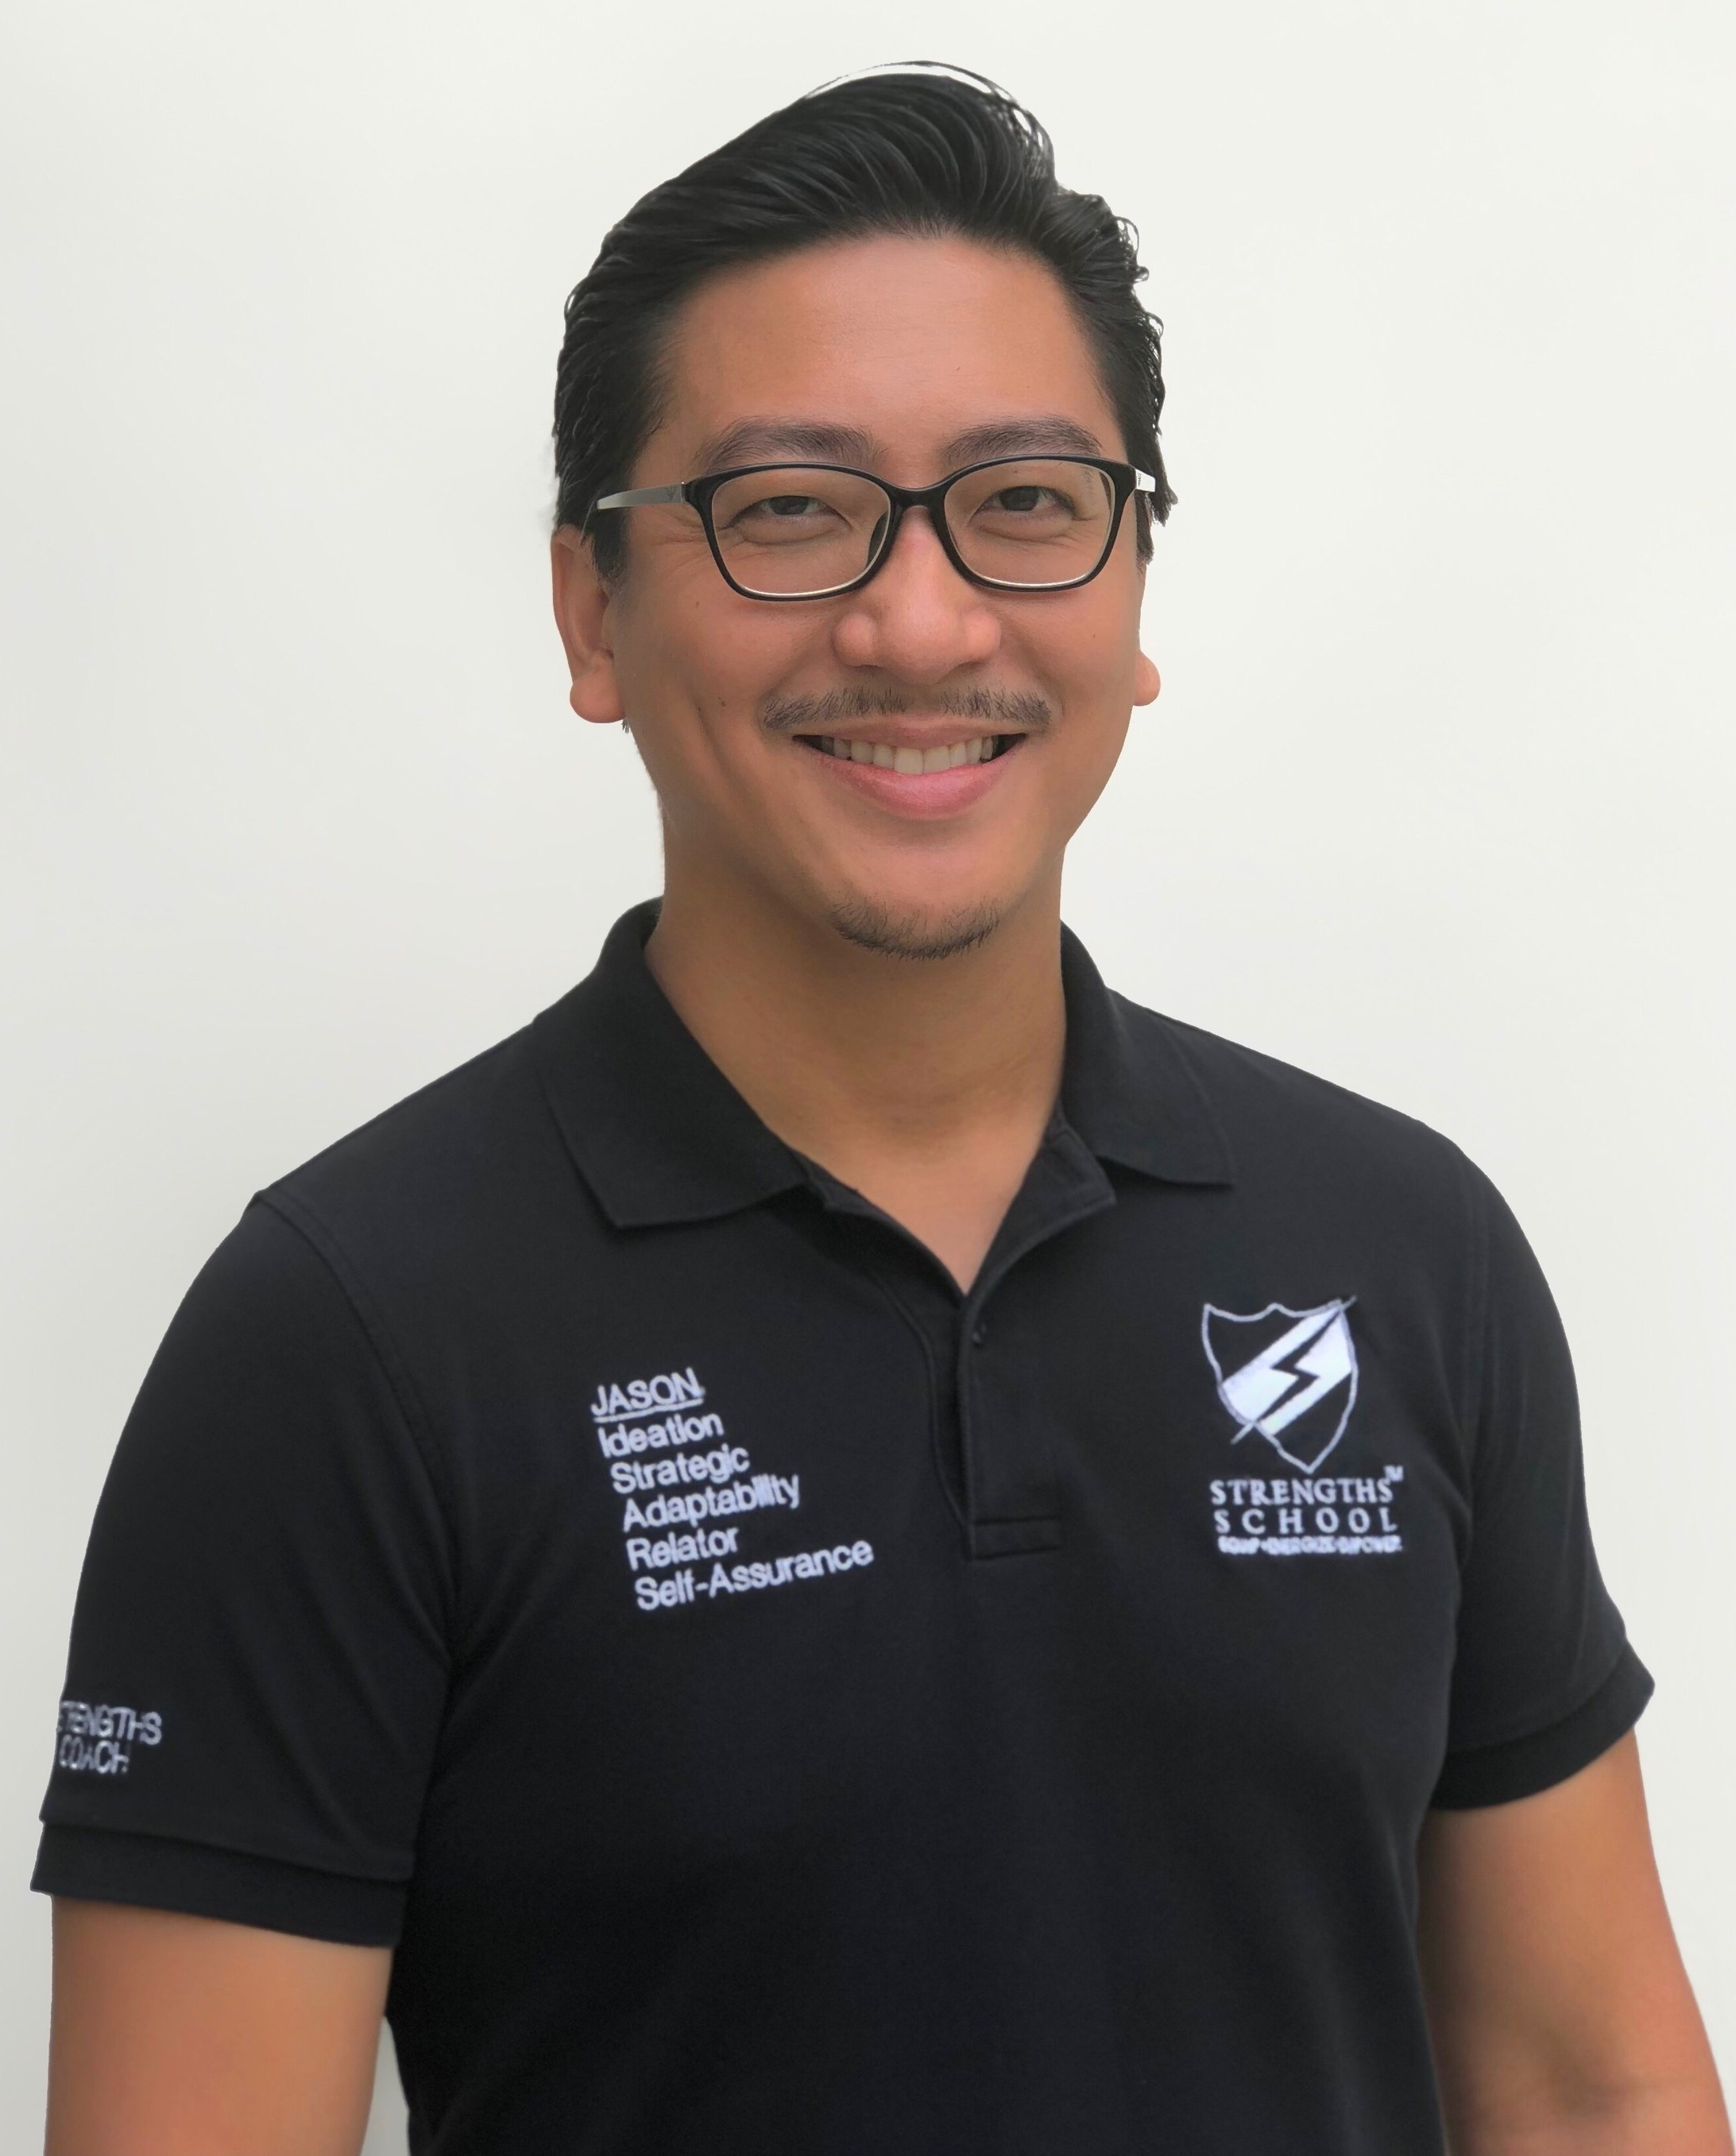 Jason Ho strengths School Singapore Education Sector StrengthsFinder CliftonStrengths.png